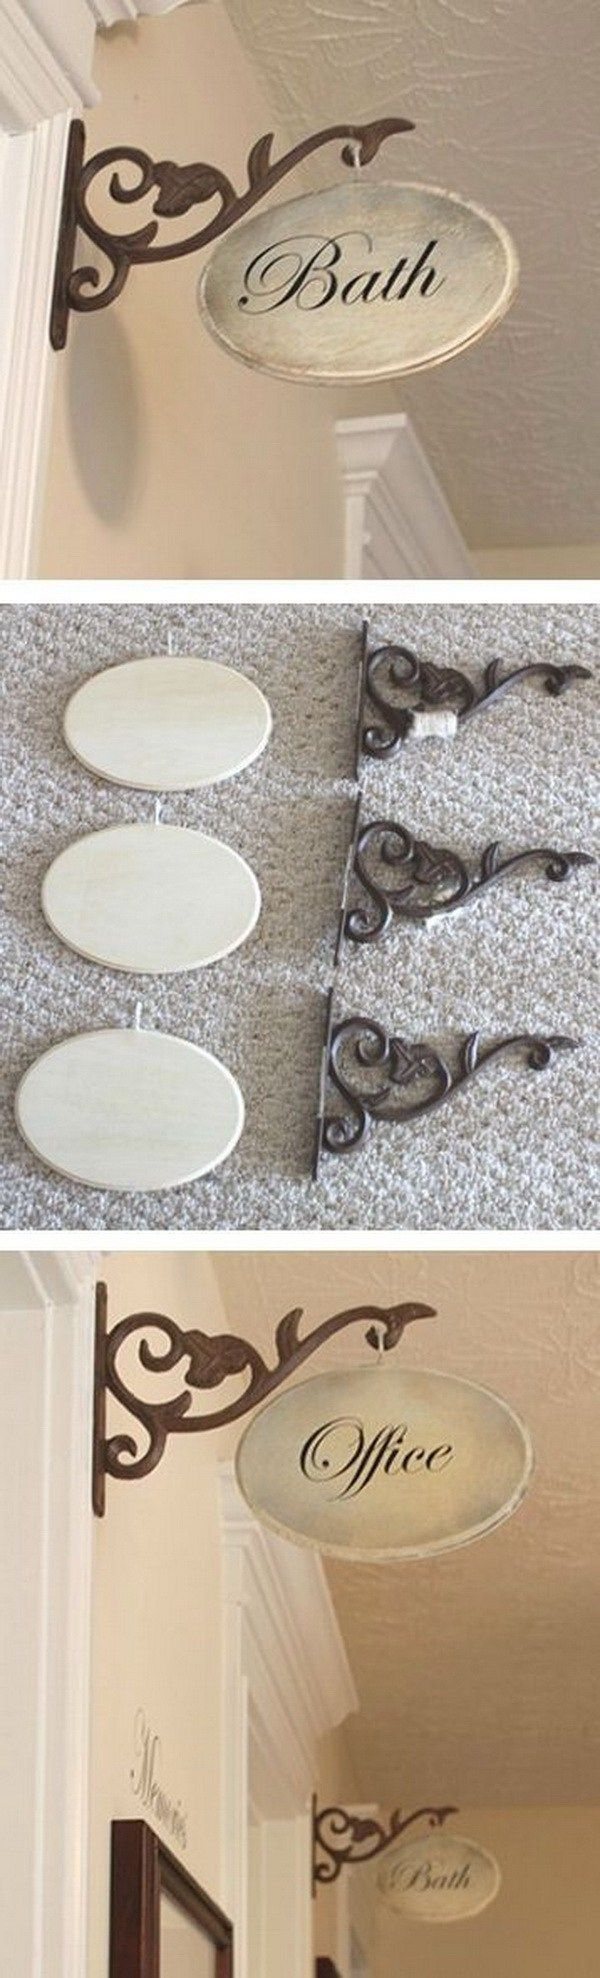 DIY Hallway Sign: Add a statement to your home decor with this easy DIY project! #hallwayideasrustic